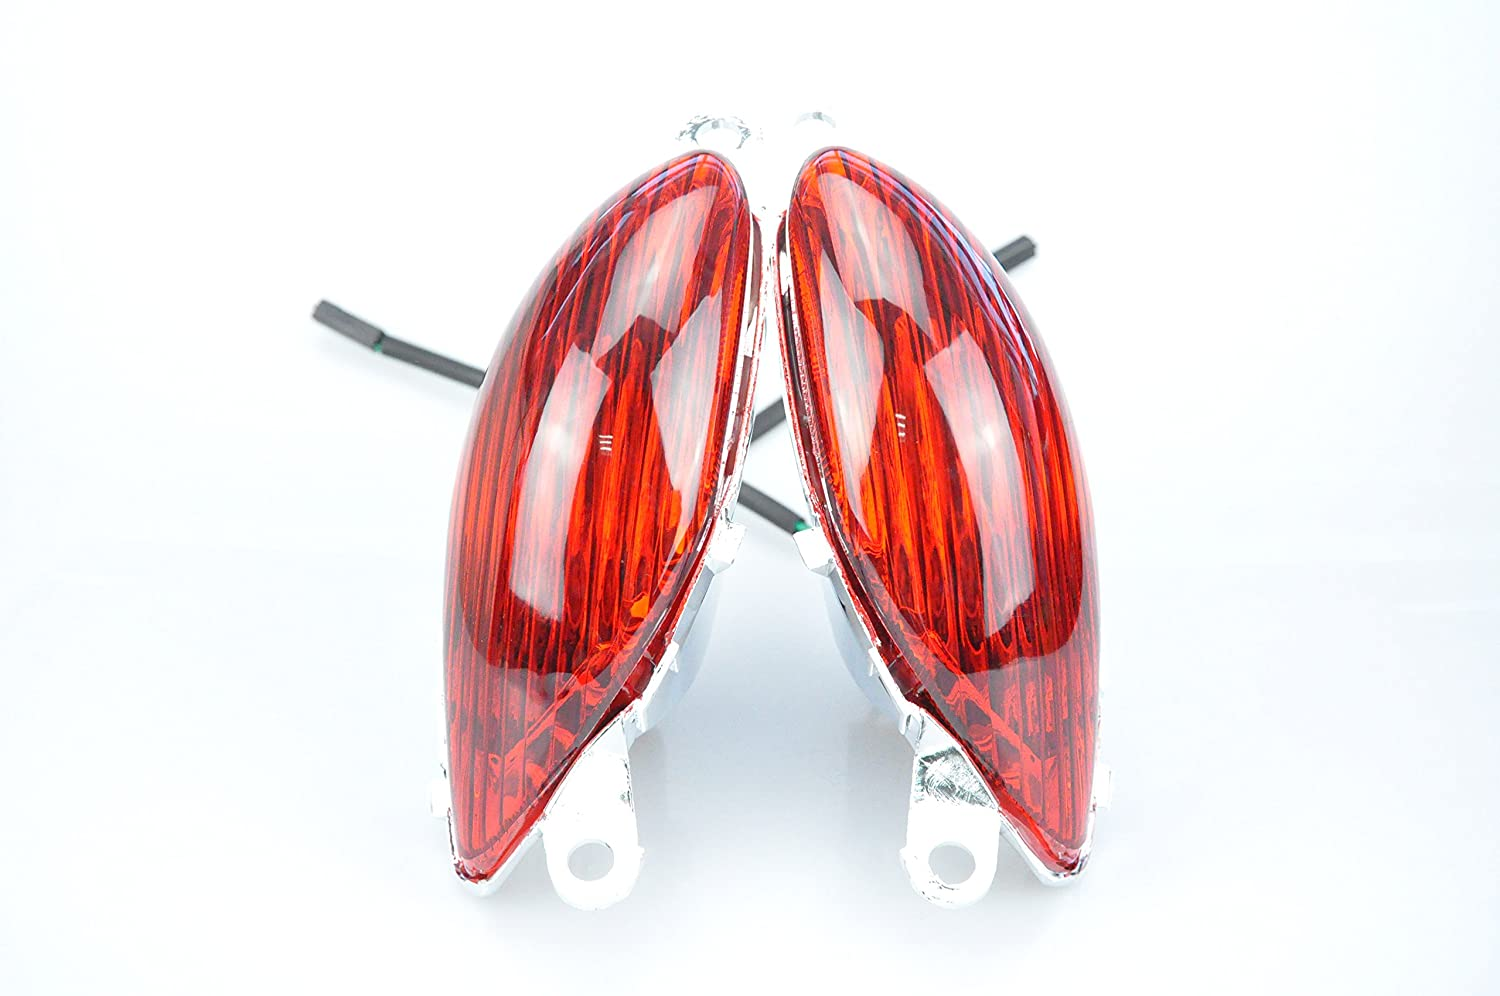 Bright Motorcycle Front Turn Signals for SUZUKI 99-07 GSXR1300 with Bulbs, Red Striped